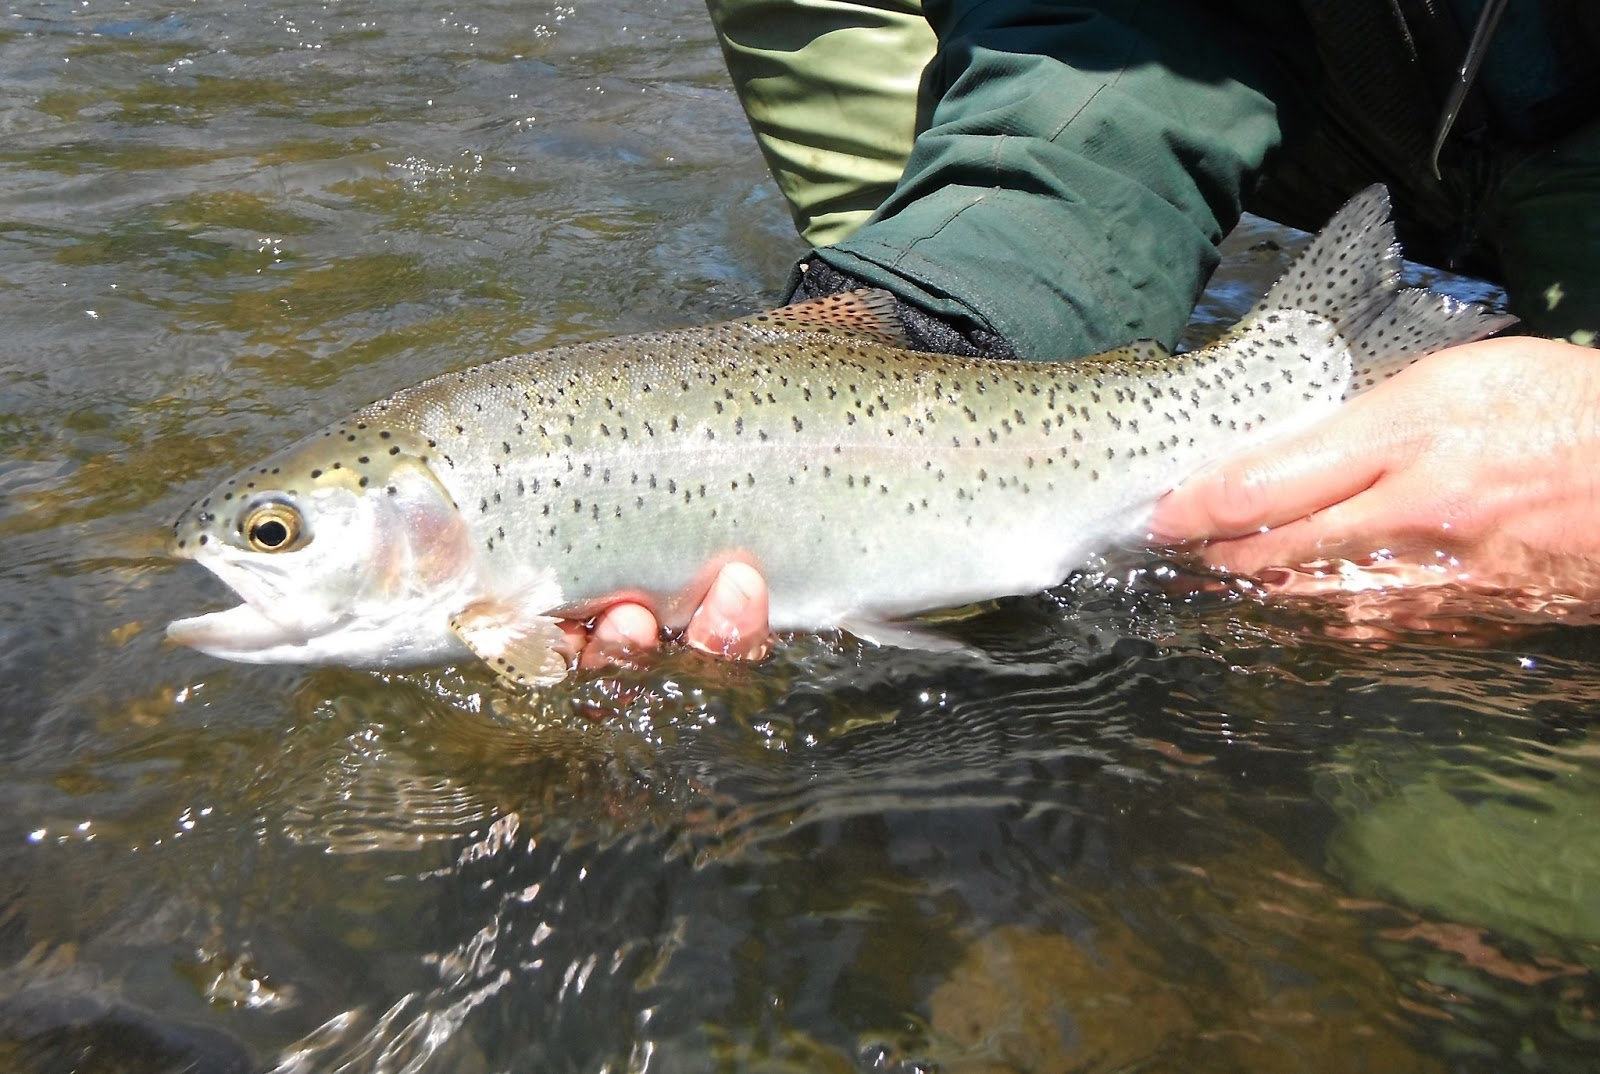 Western maryland fly fishing youghiogheny 04 25 2013 for Md trout fishing